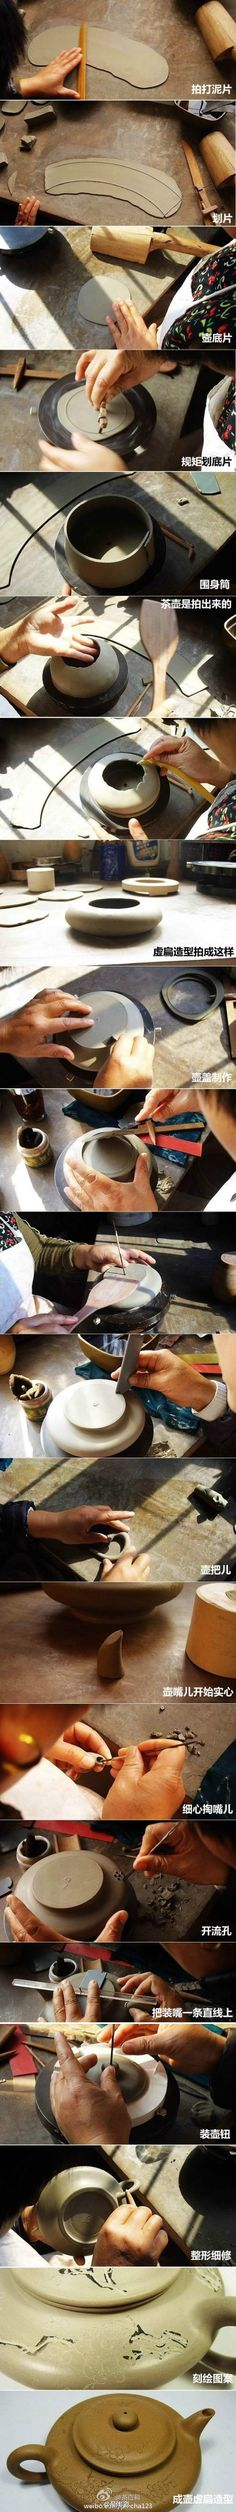 Making a tea pot